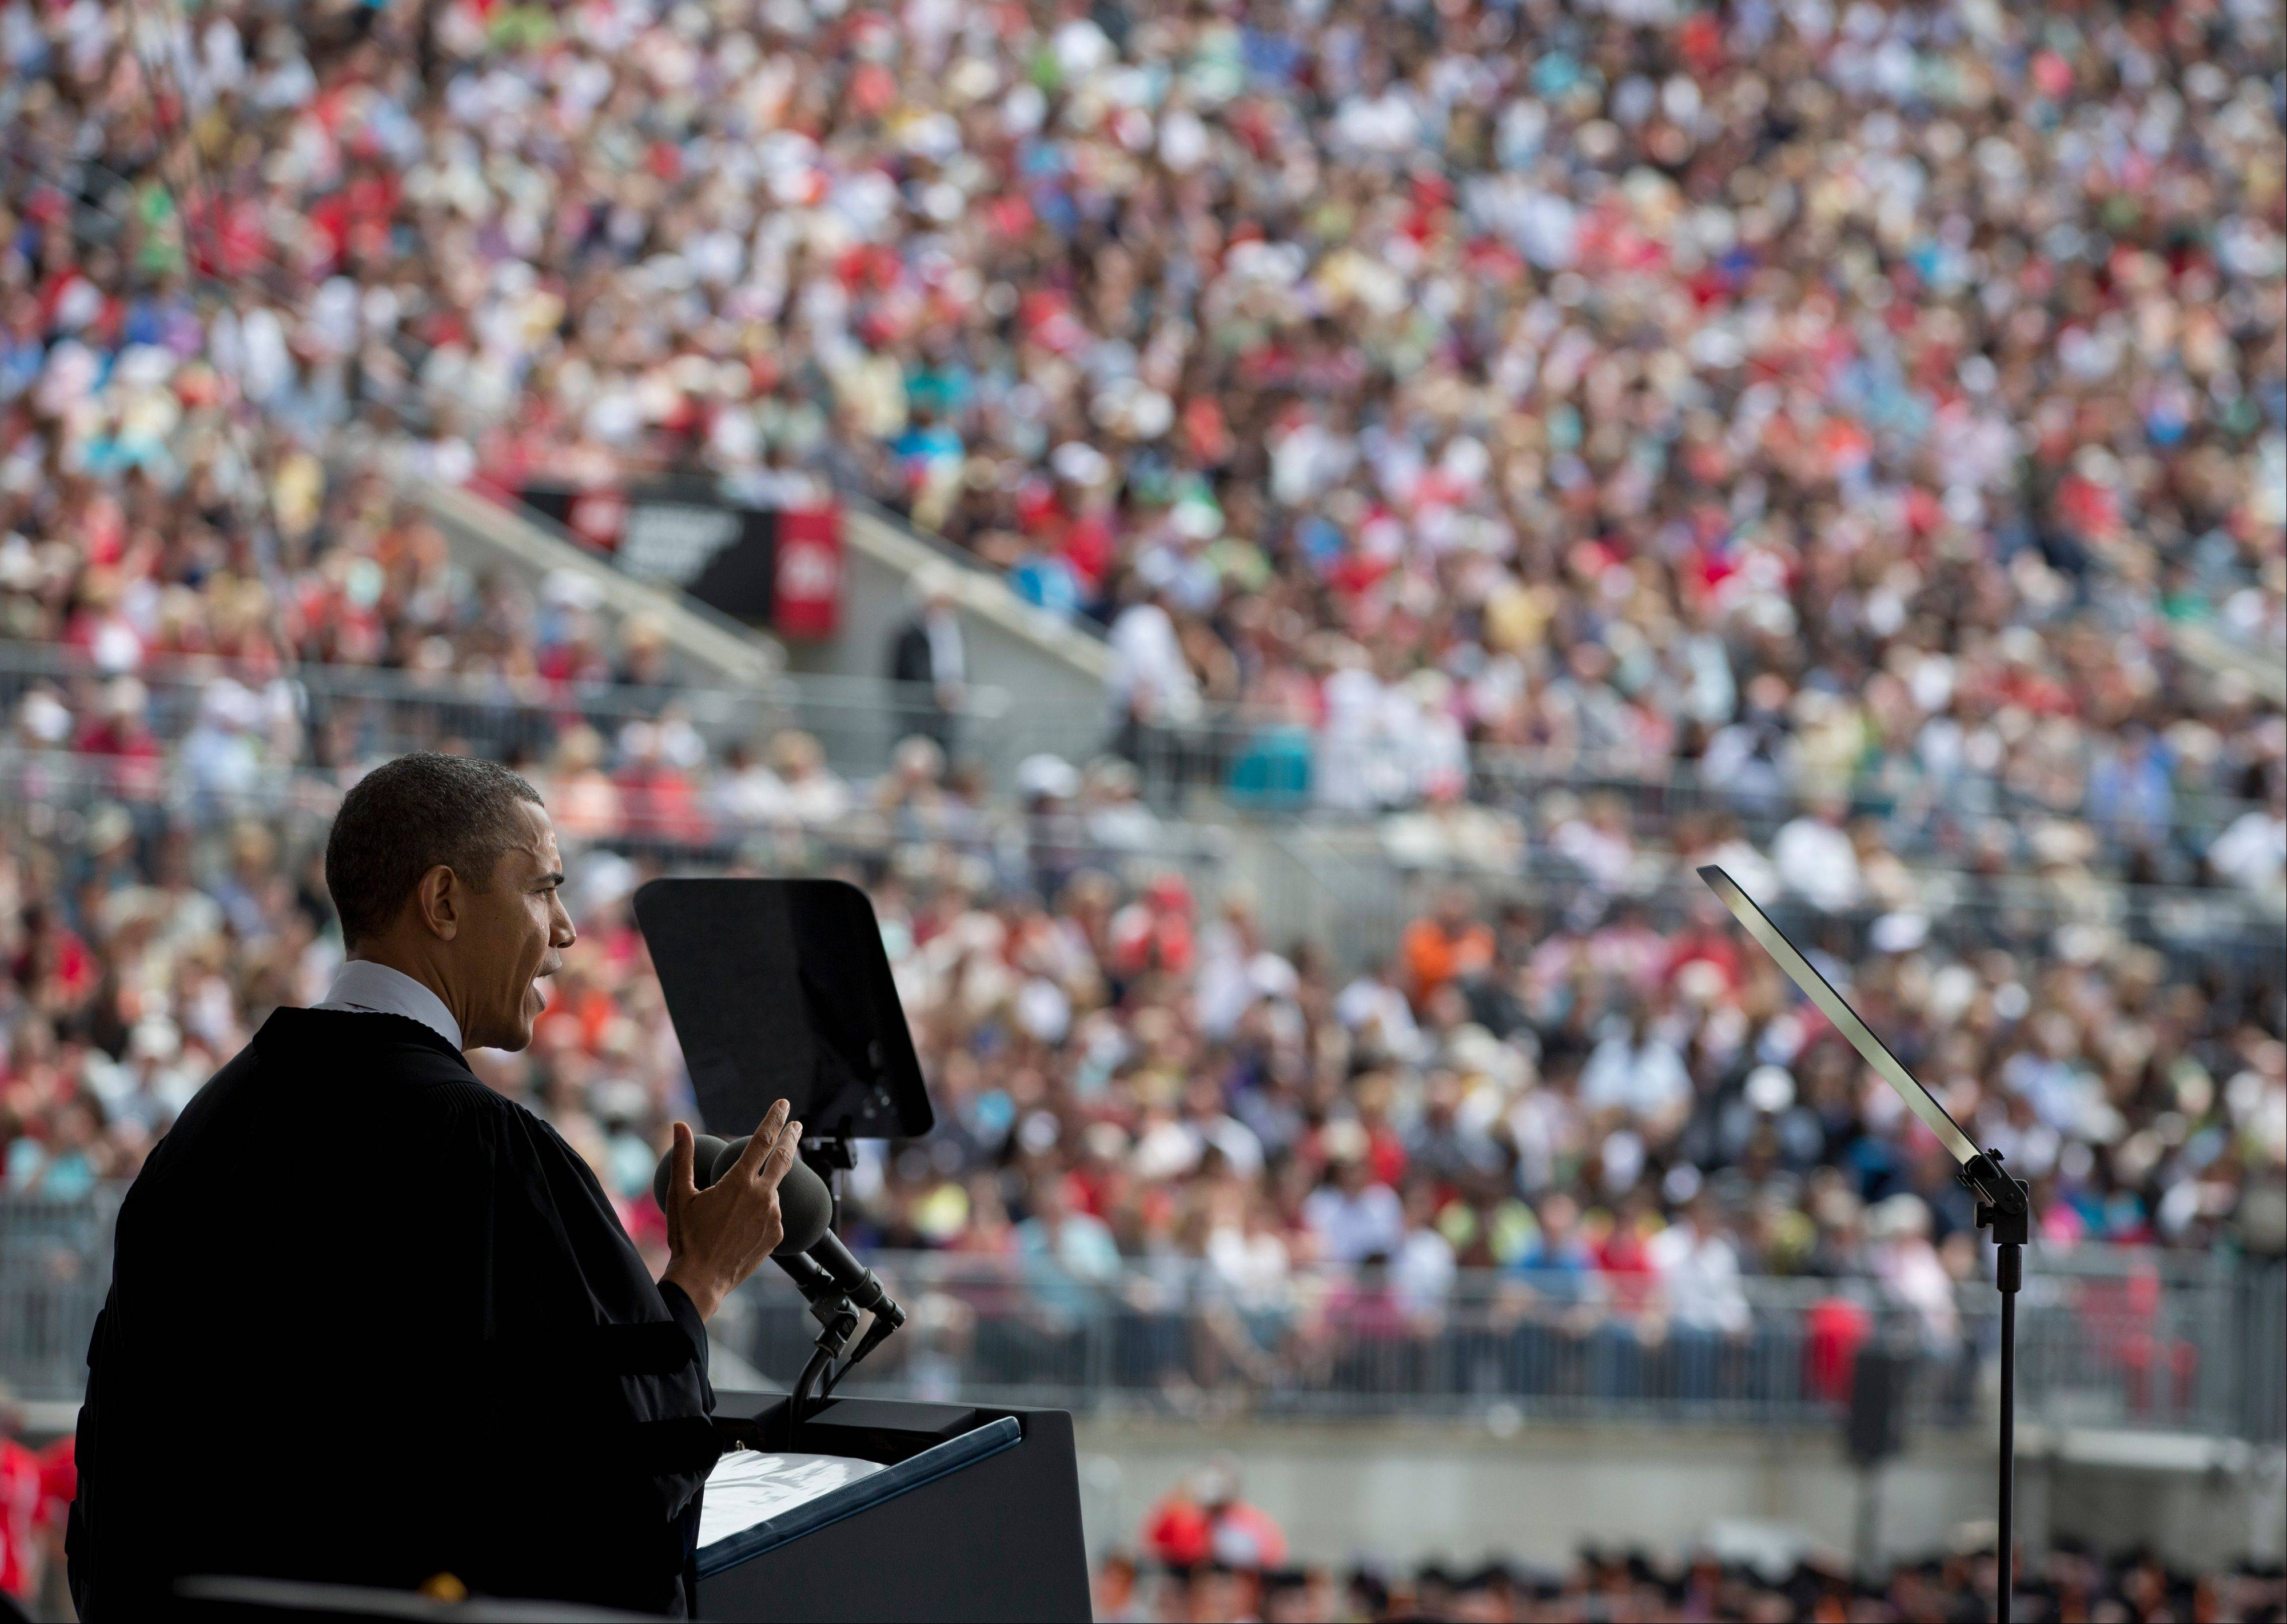 President Barack Obama speaks during the Ohio State University spring commencement in the Ohio Stadium Sunday in Columbus, Ohio. Obama delivered the commencement address before receiving an honorary doctor of law degree. He urged graduating students to be active citizens, to fight for causes they believe in, and to be better than generations before them.